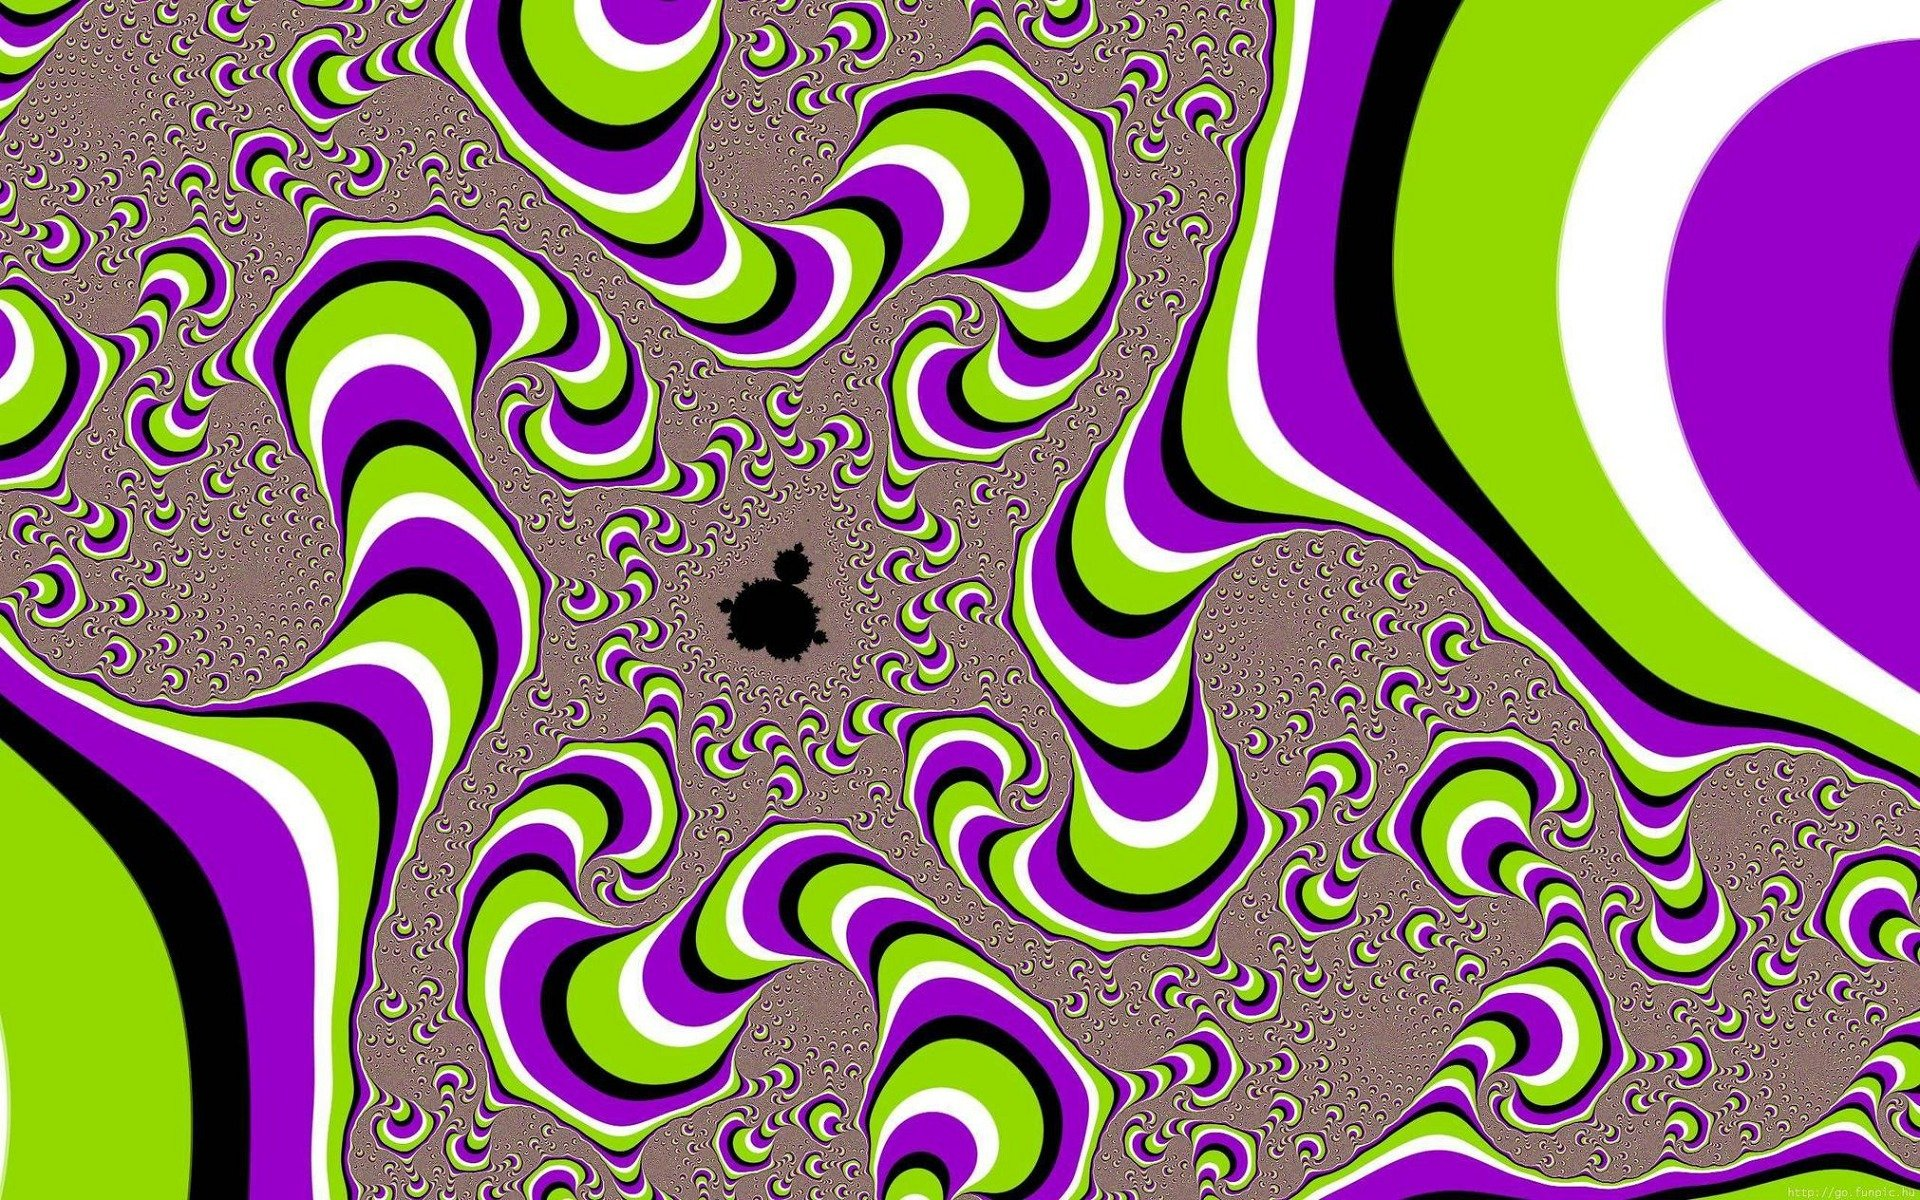 Psychedelic Trippy Backgrounds For Desktop Android IPhone 1920x1200